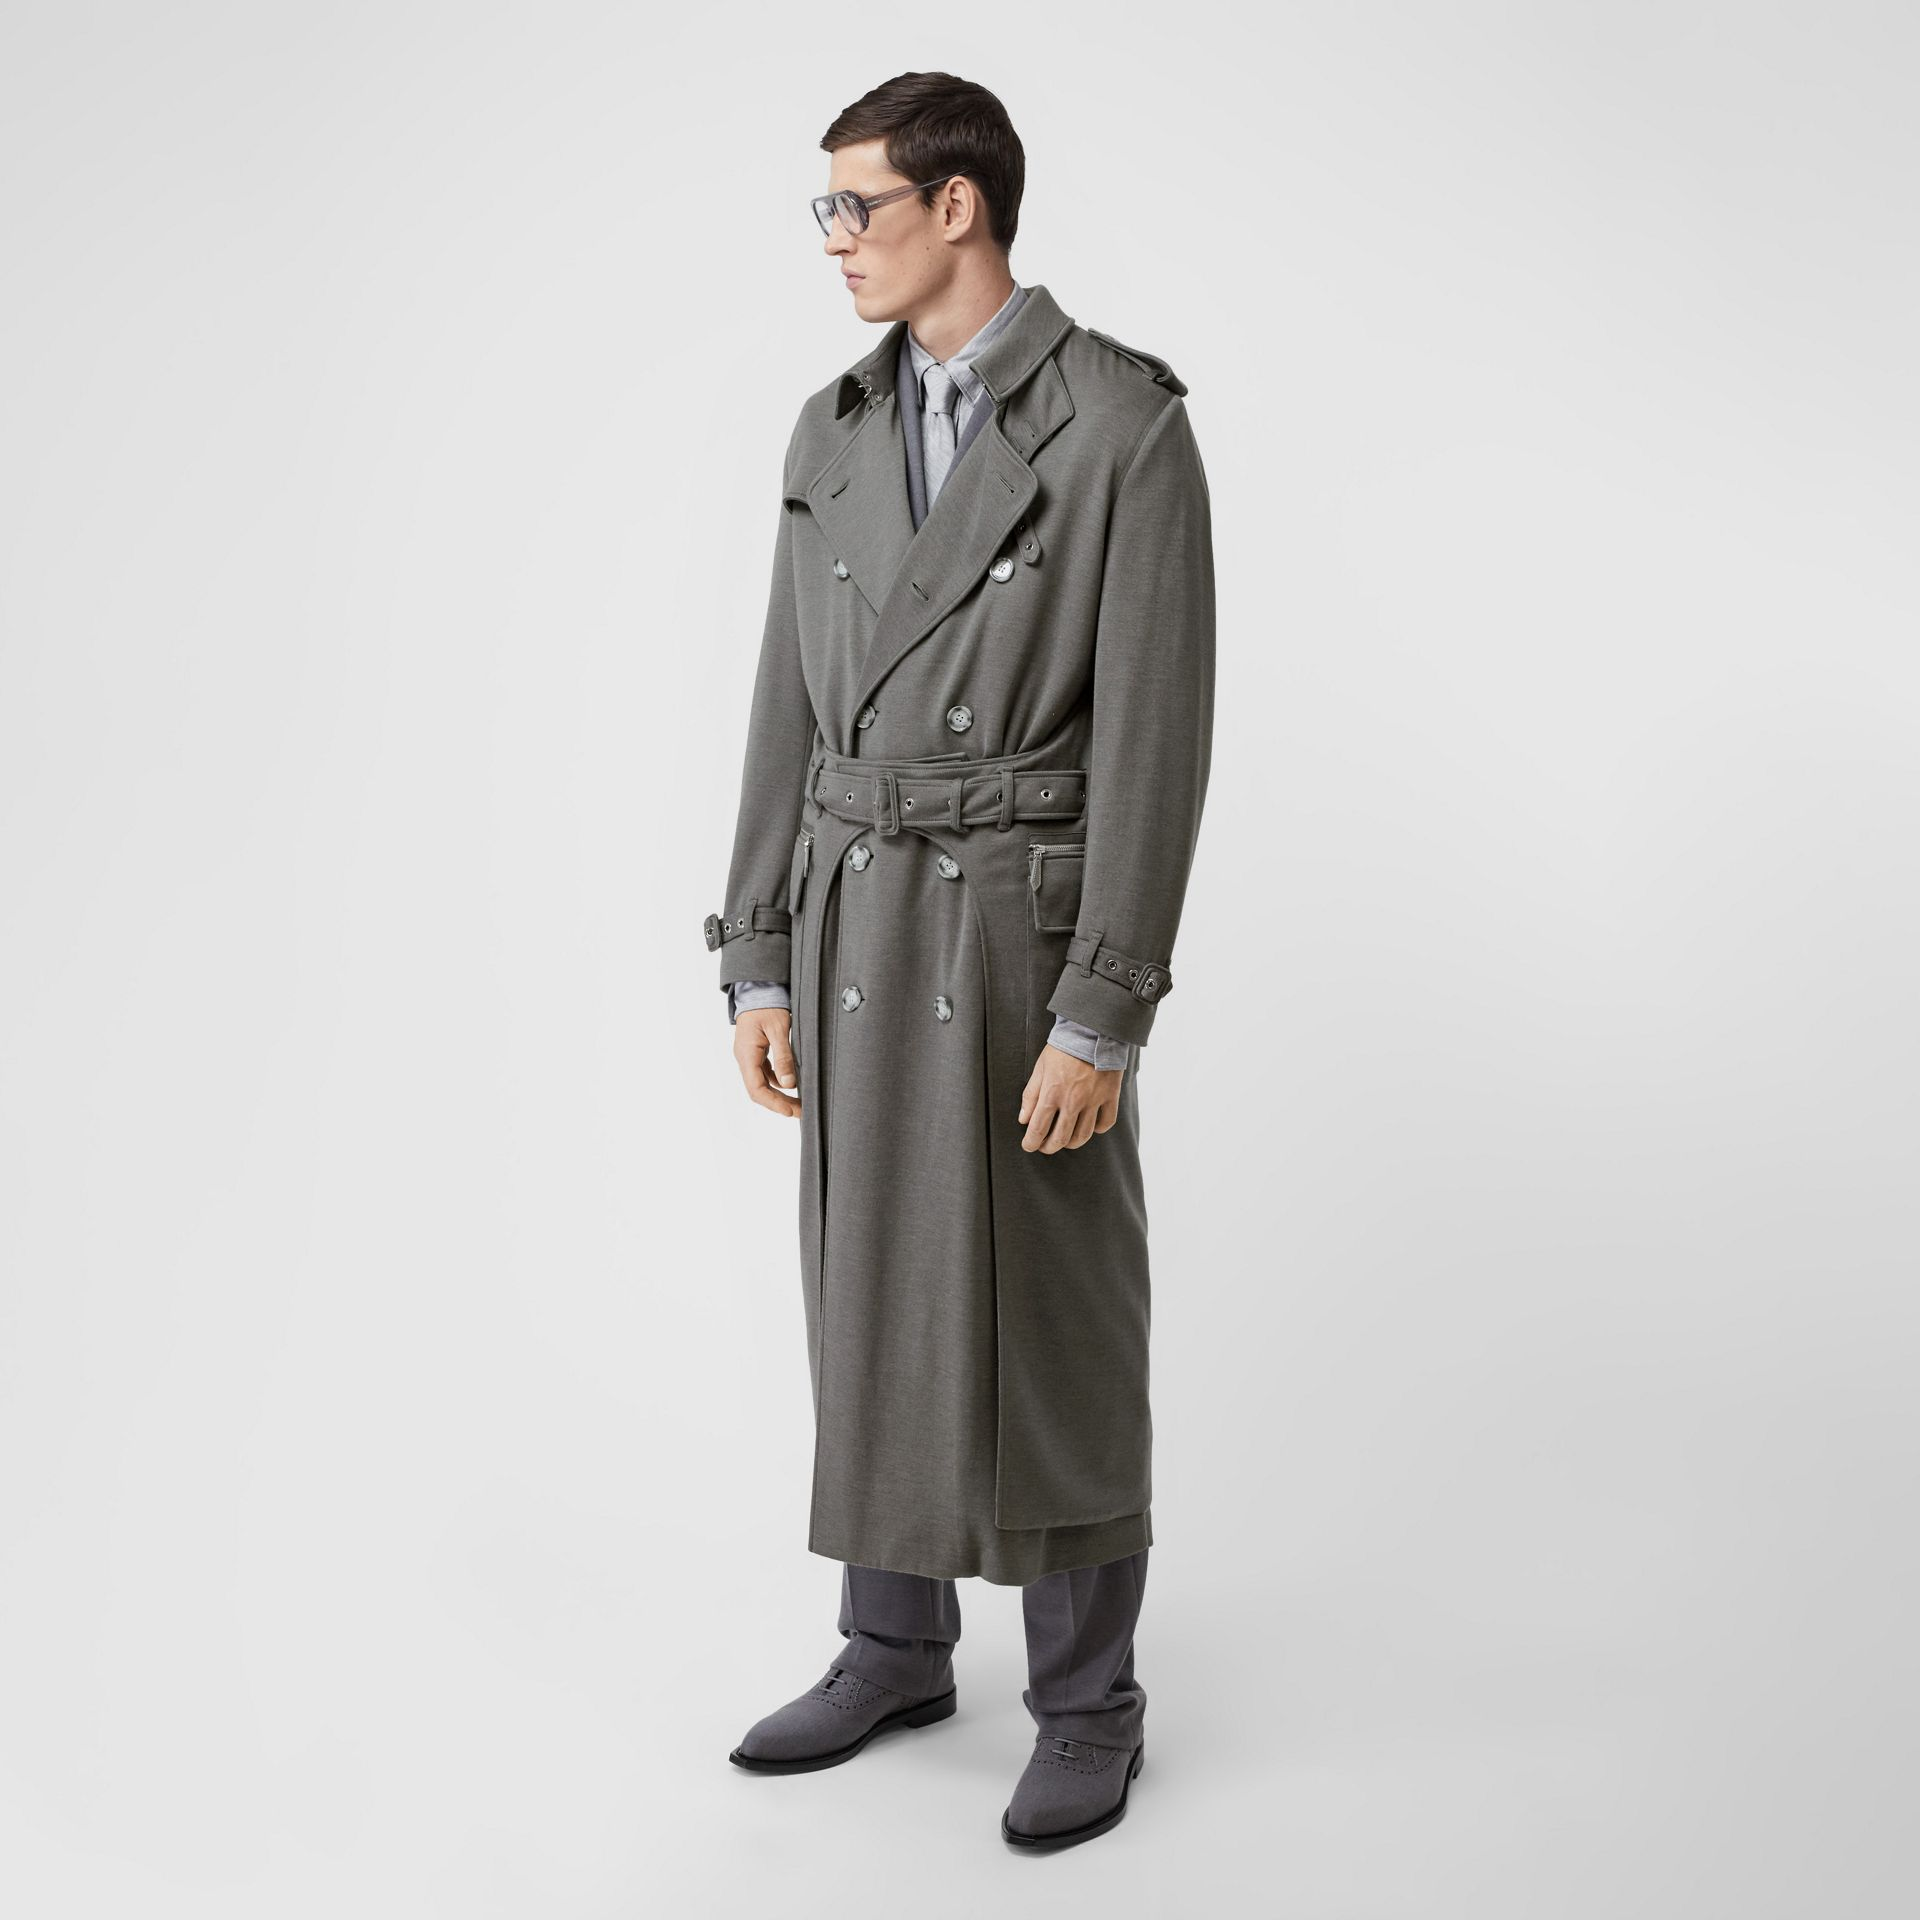 Cargo Pocket Detail Cashmere Silk Trench Coat in Cloud Grey - Men | Burberry Canada - gallery image 6